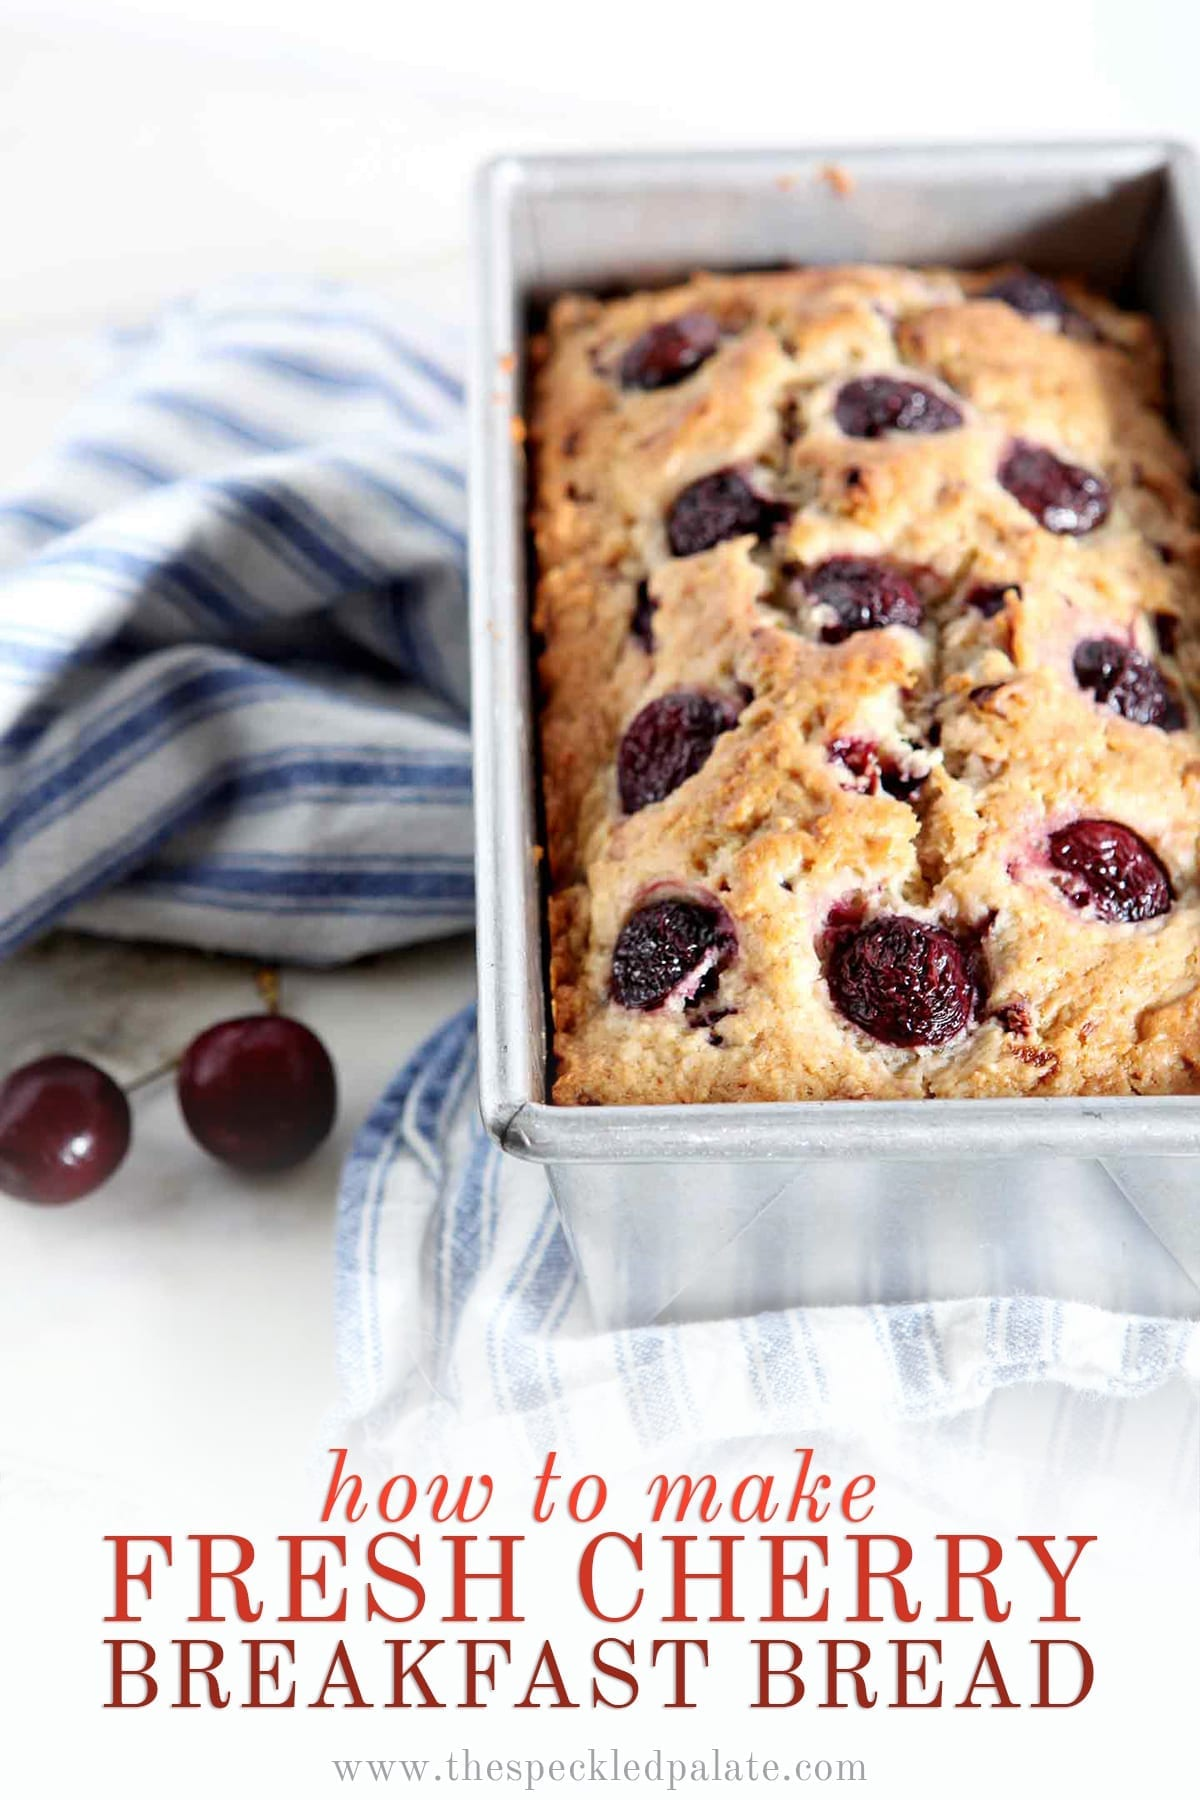 A loaf of Fresh Cherry Bread in its pan on a blue and white striped towel, next to fresh cherries with the text 'how to make fresh cherry breakfast bread'